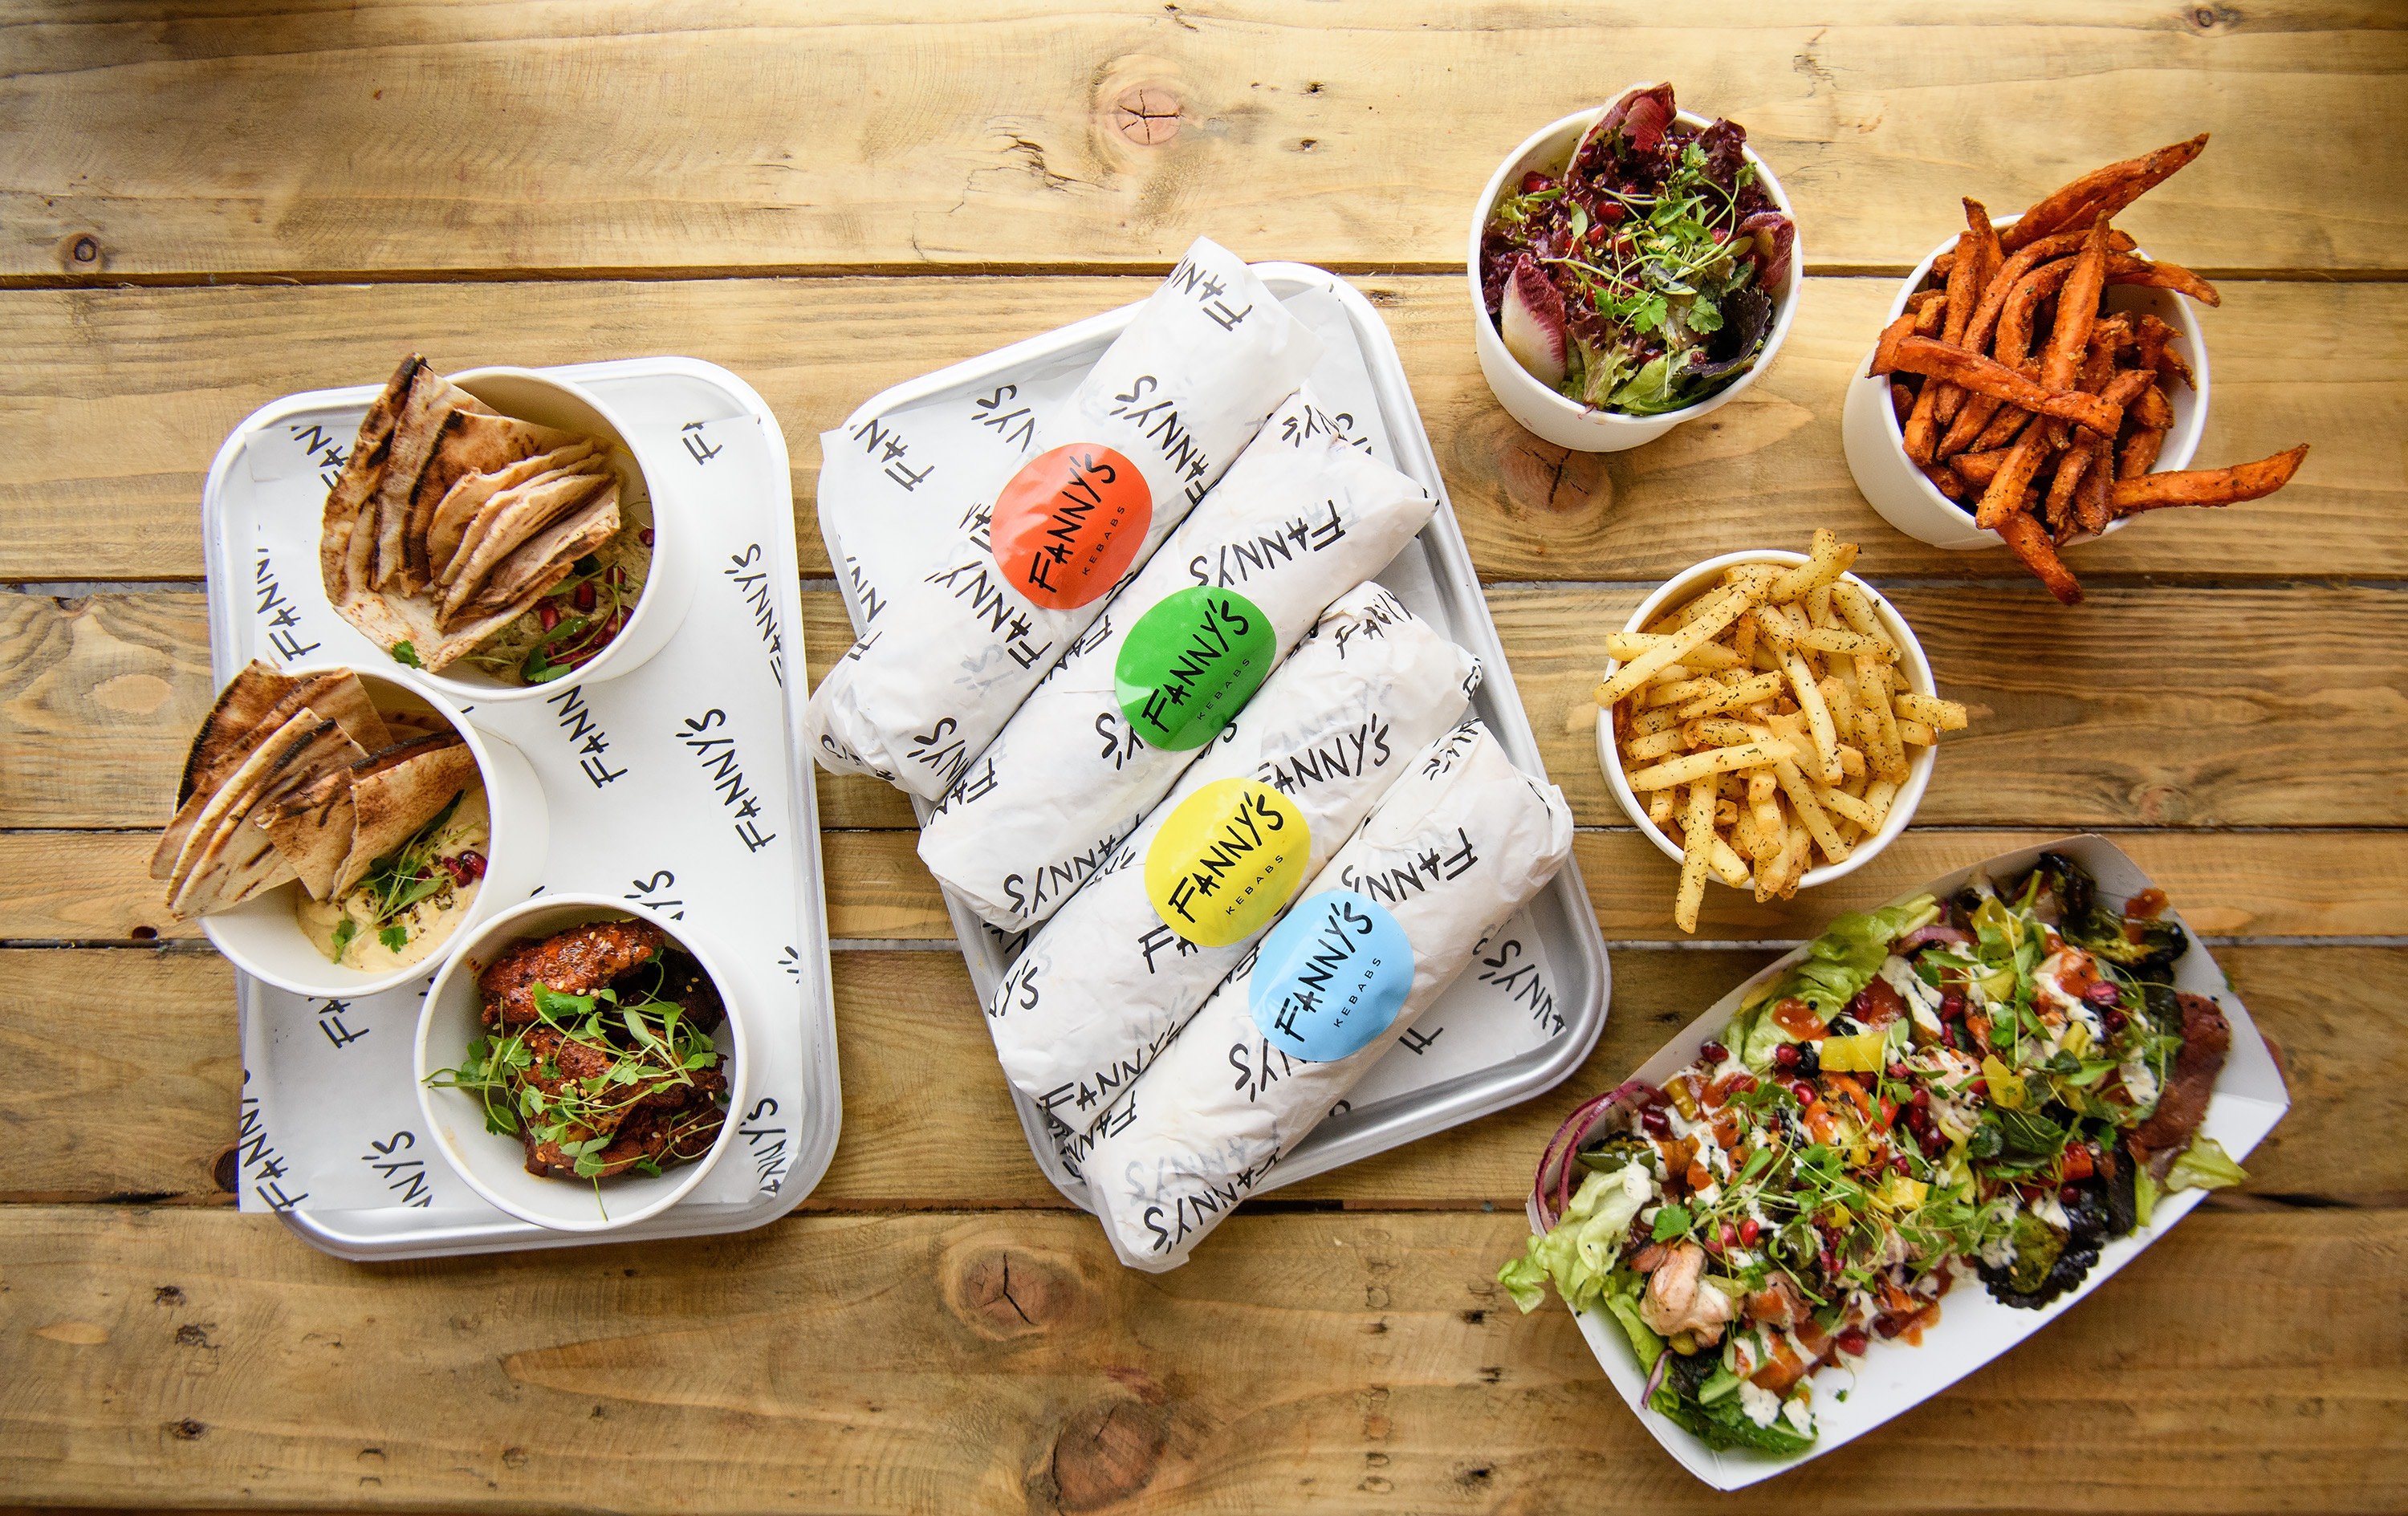 City Pantry - Lunch in Hackney - Fanny's Kebabs